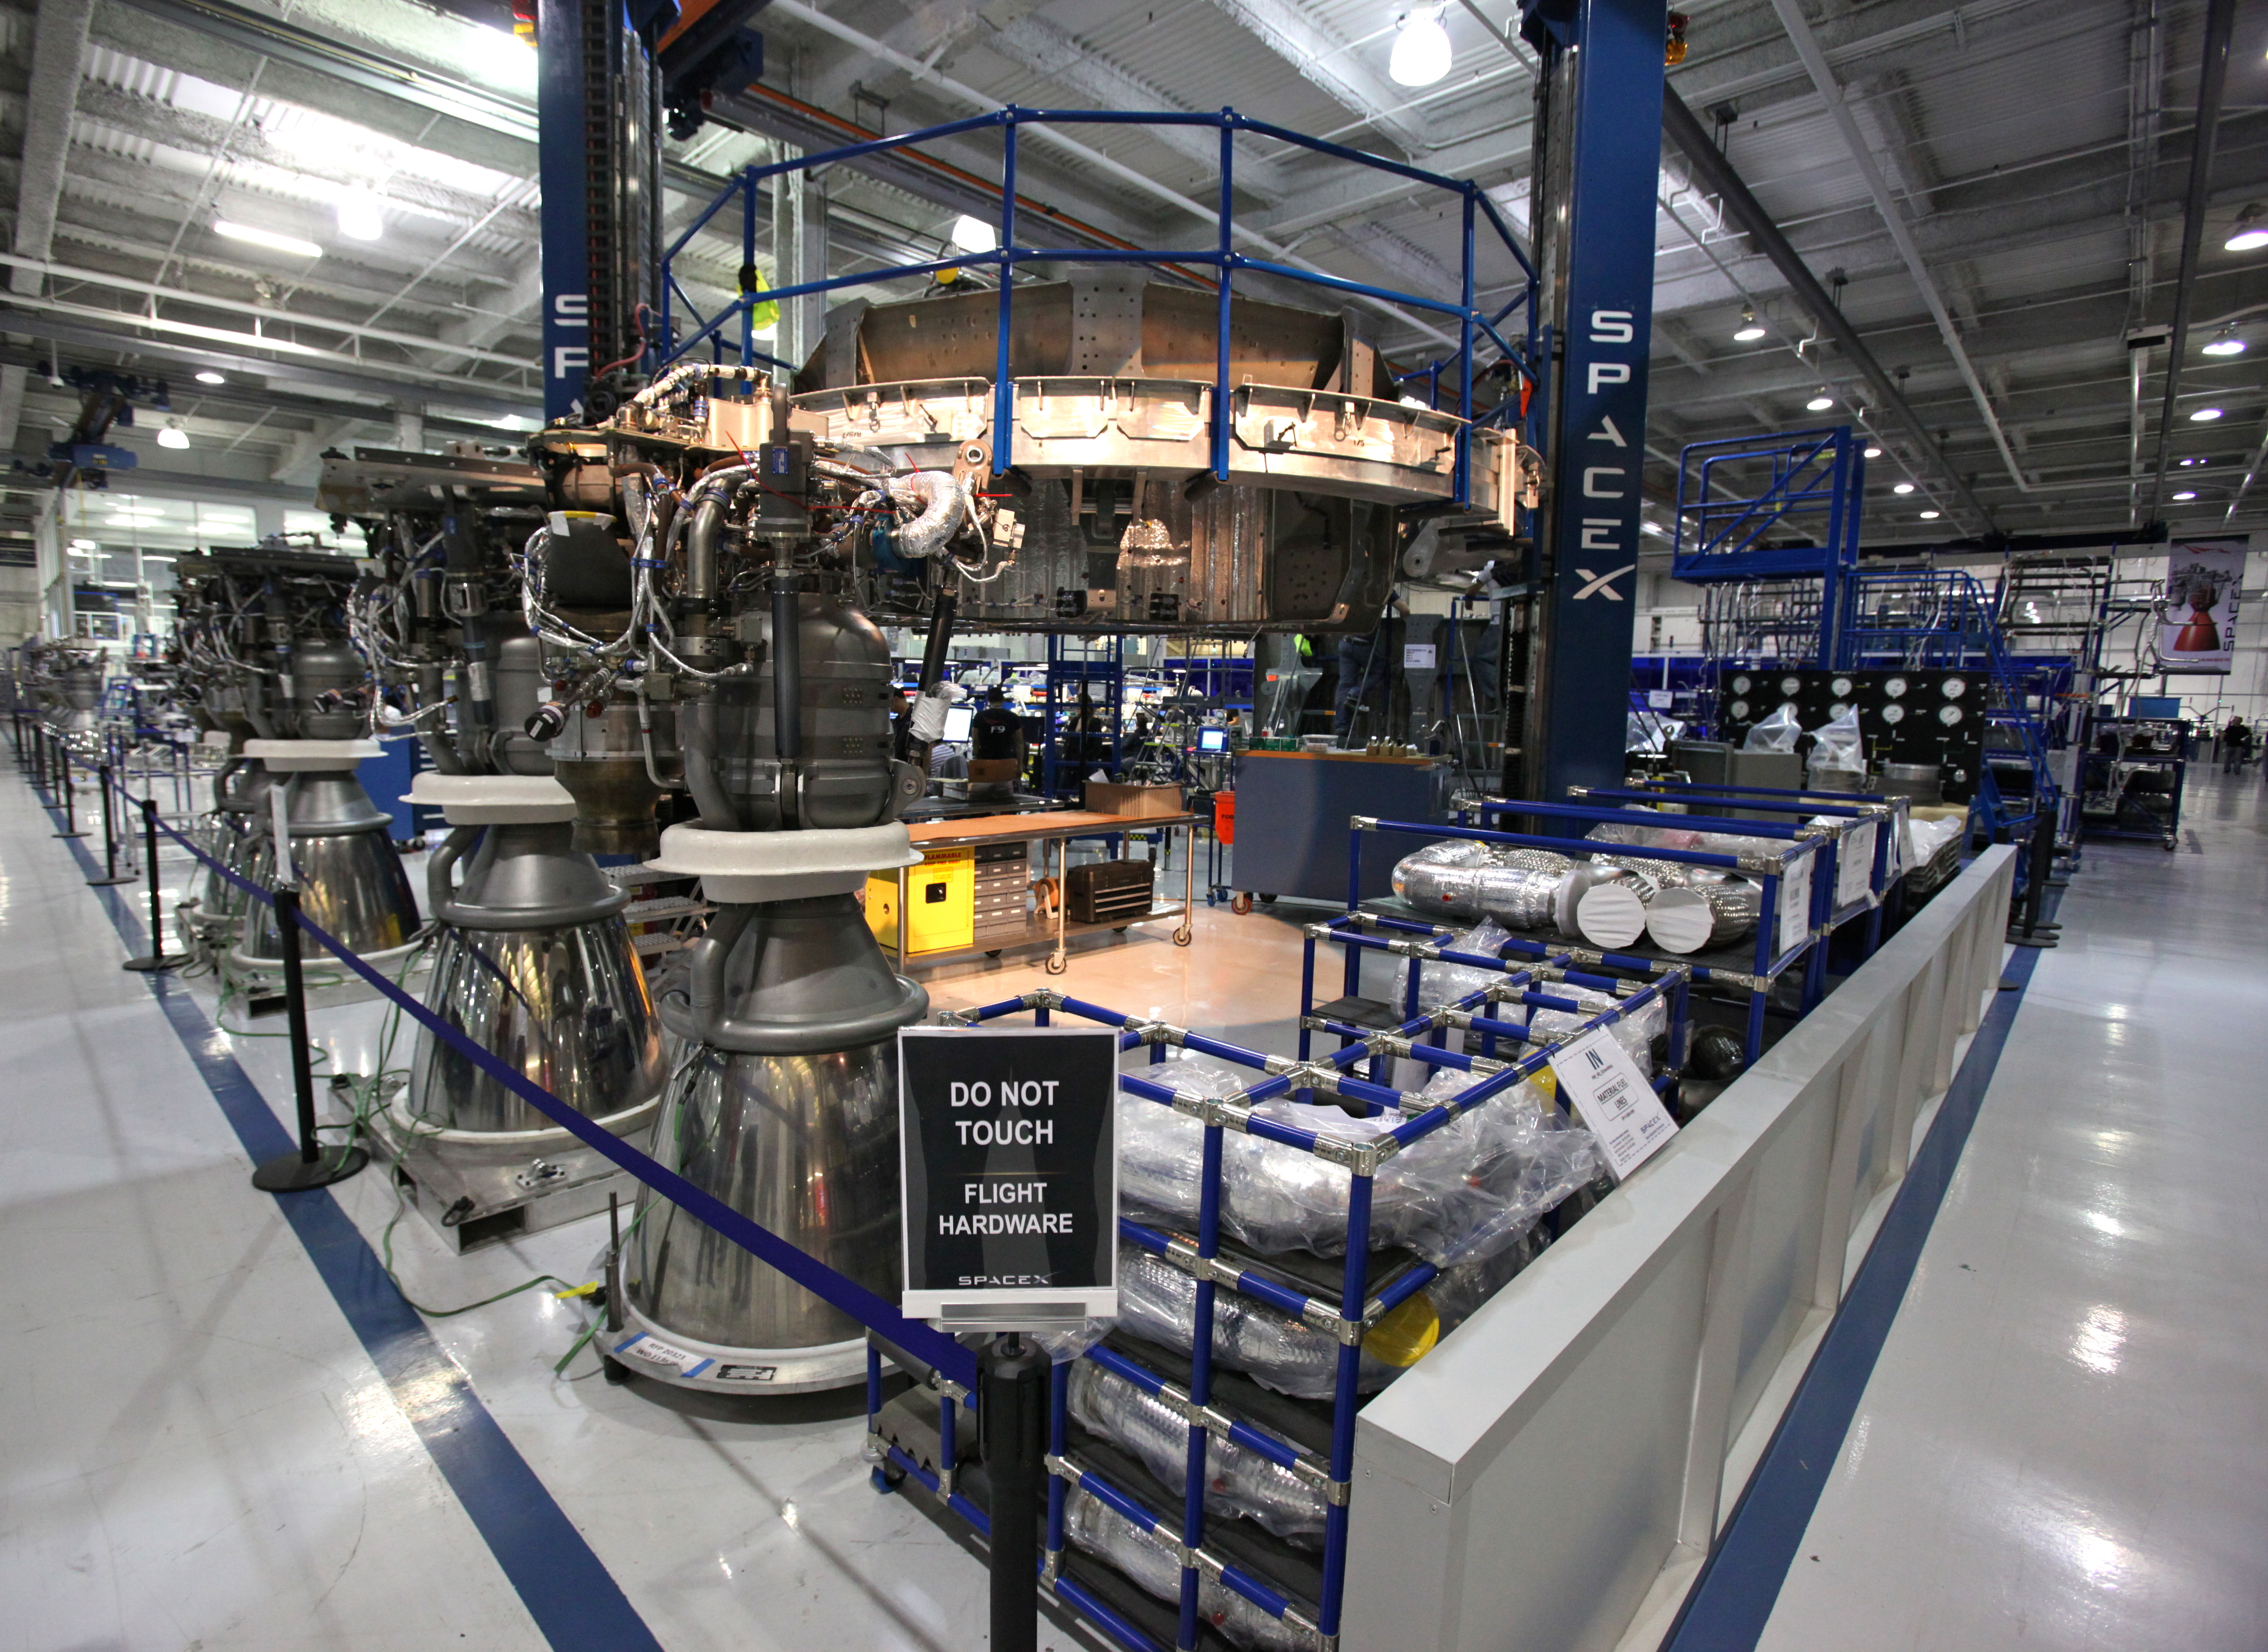 inside spacex factory - photo #28